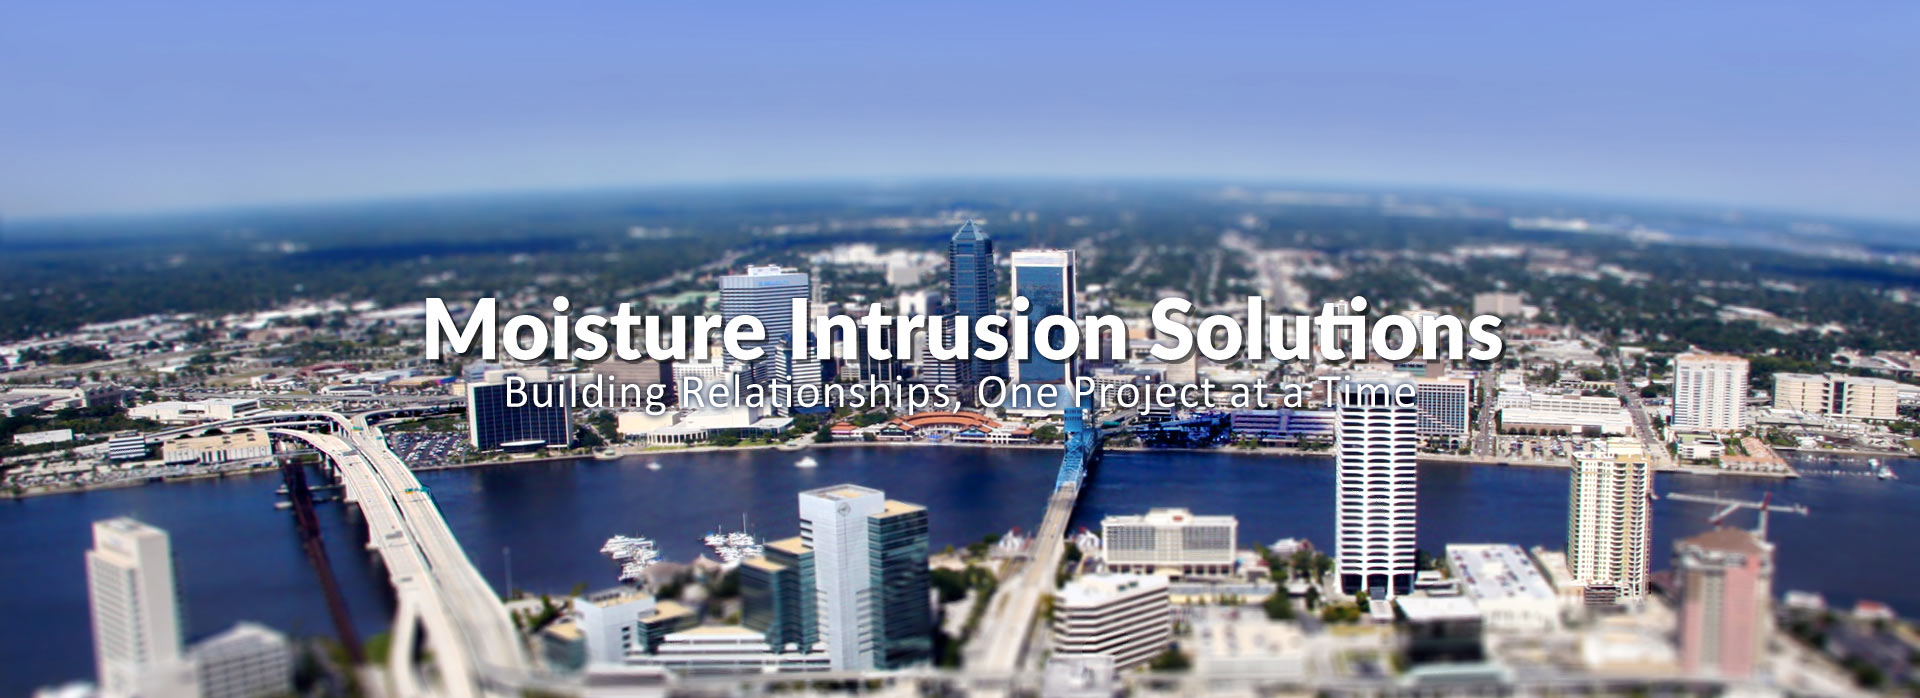 Moisture Intrusion Solutions Jacksonville Tilt Shift